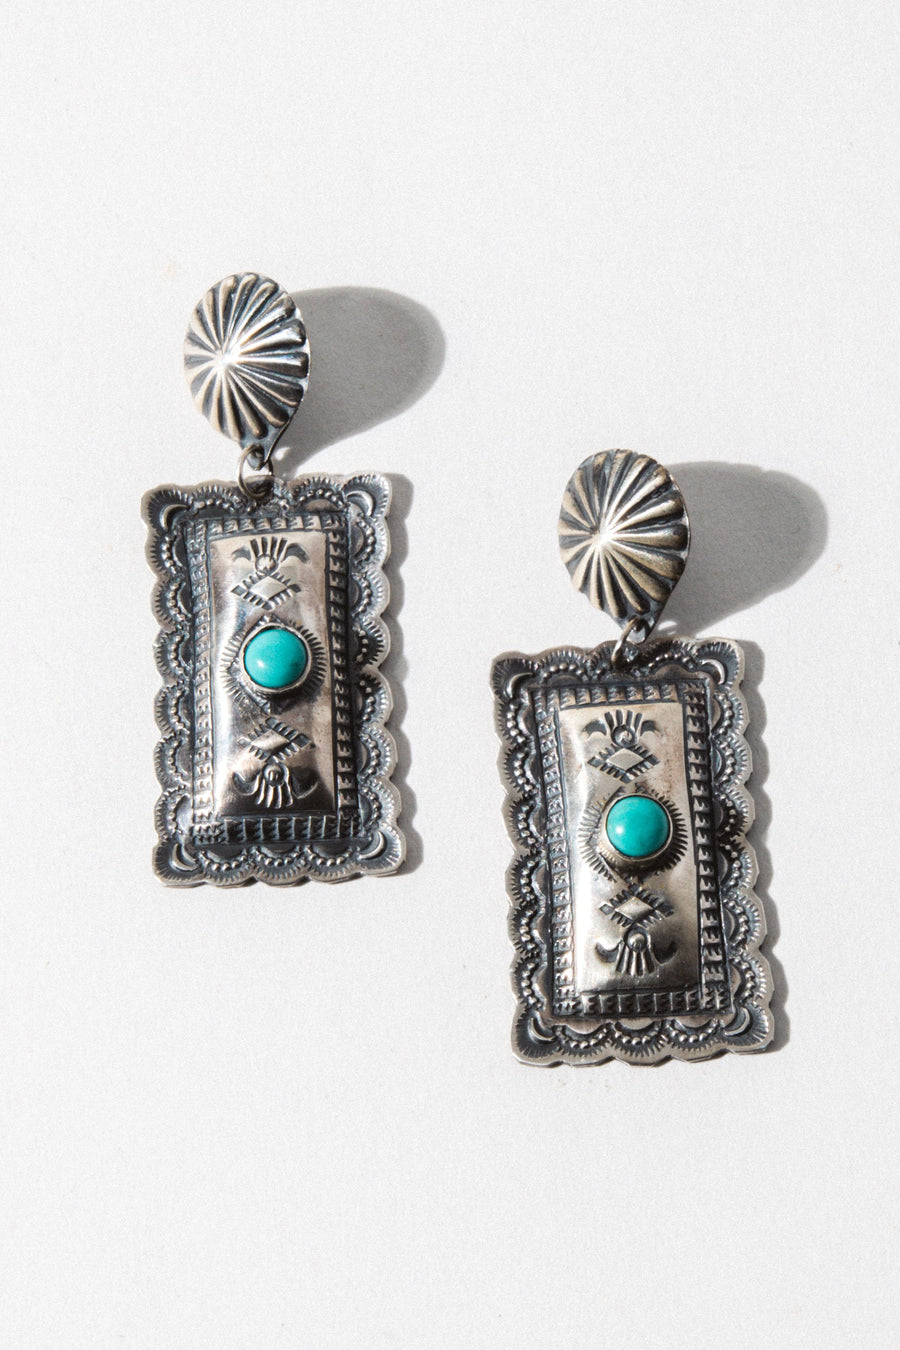 Sunwest Jewelry Turquoise Concho Sunrise Earrings